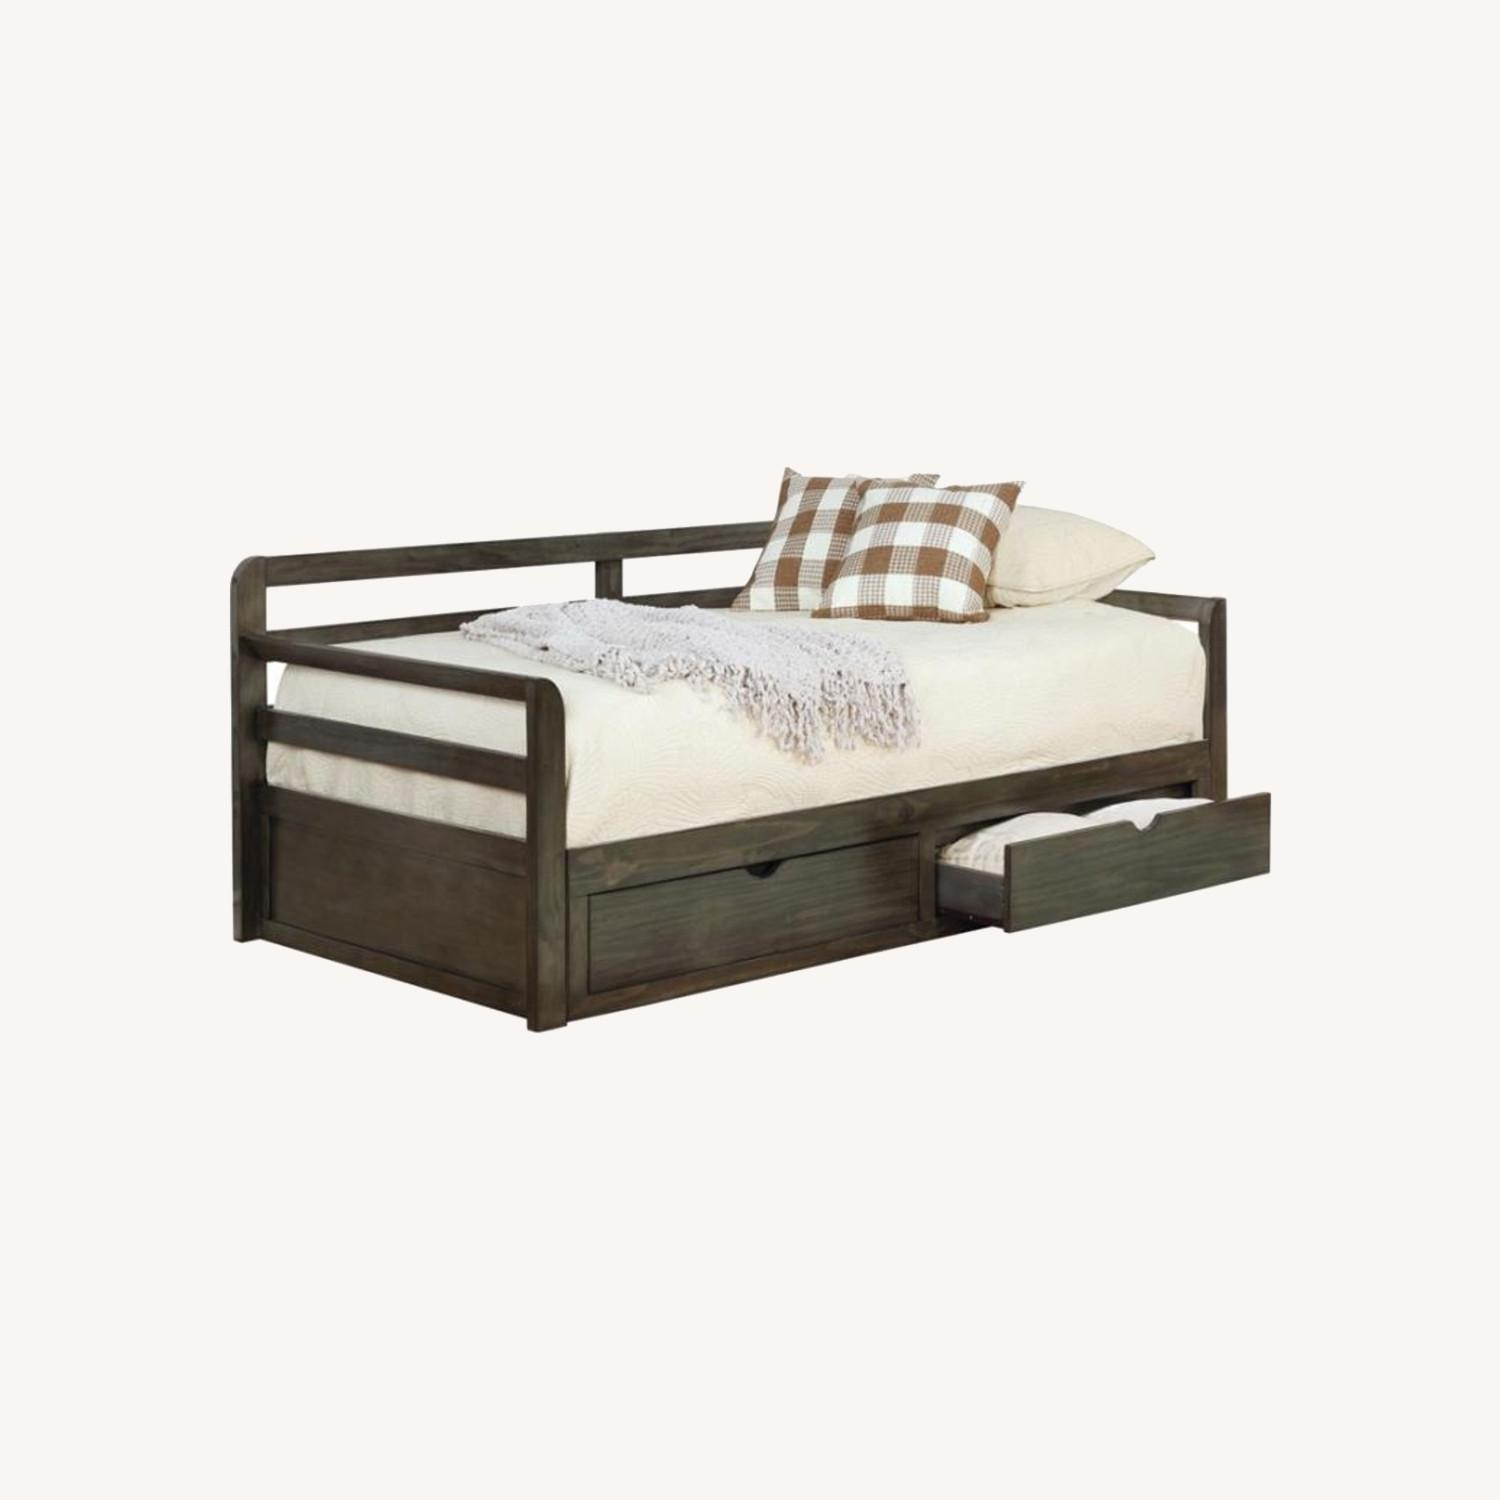 Daybed In Grey Wood Finish W/ Trundle - image-3